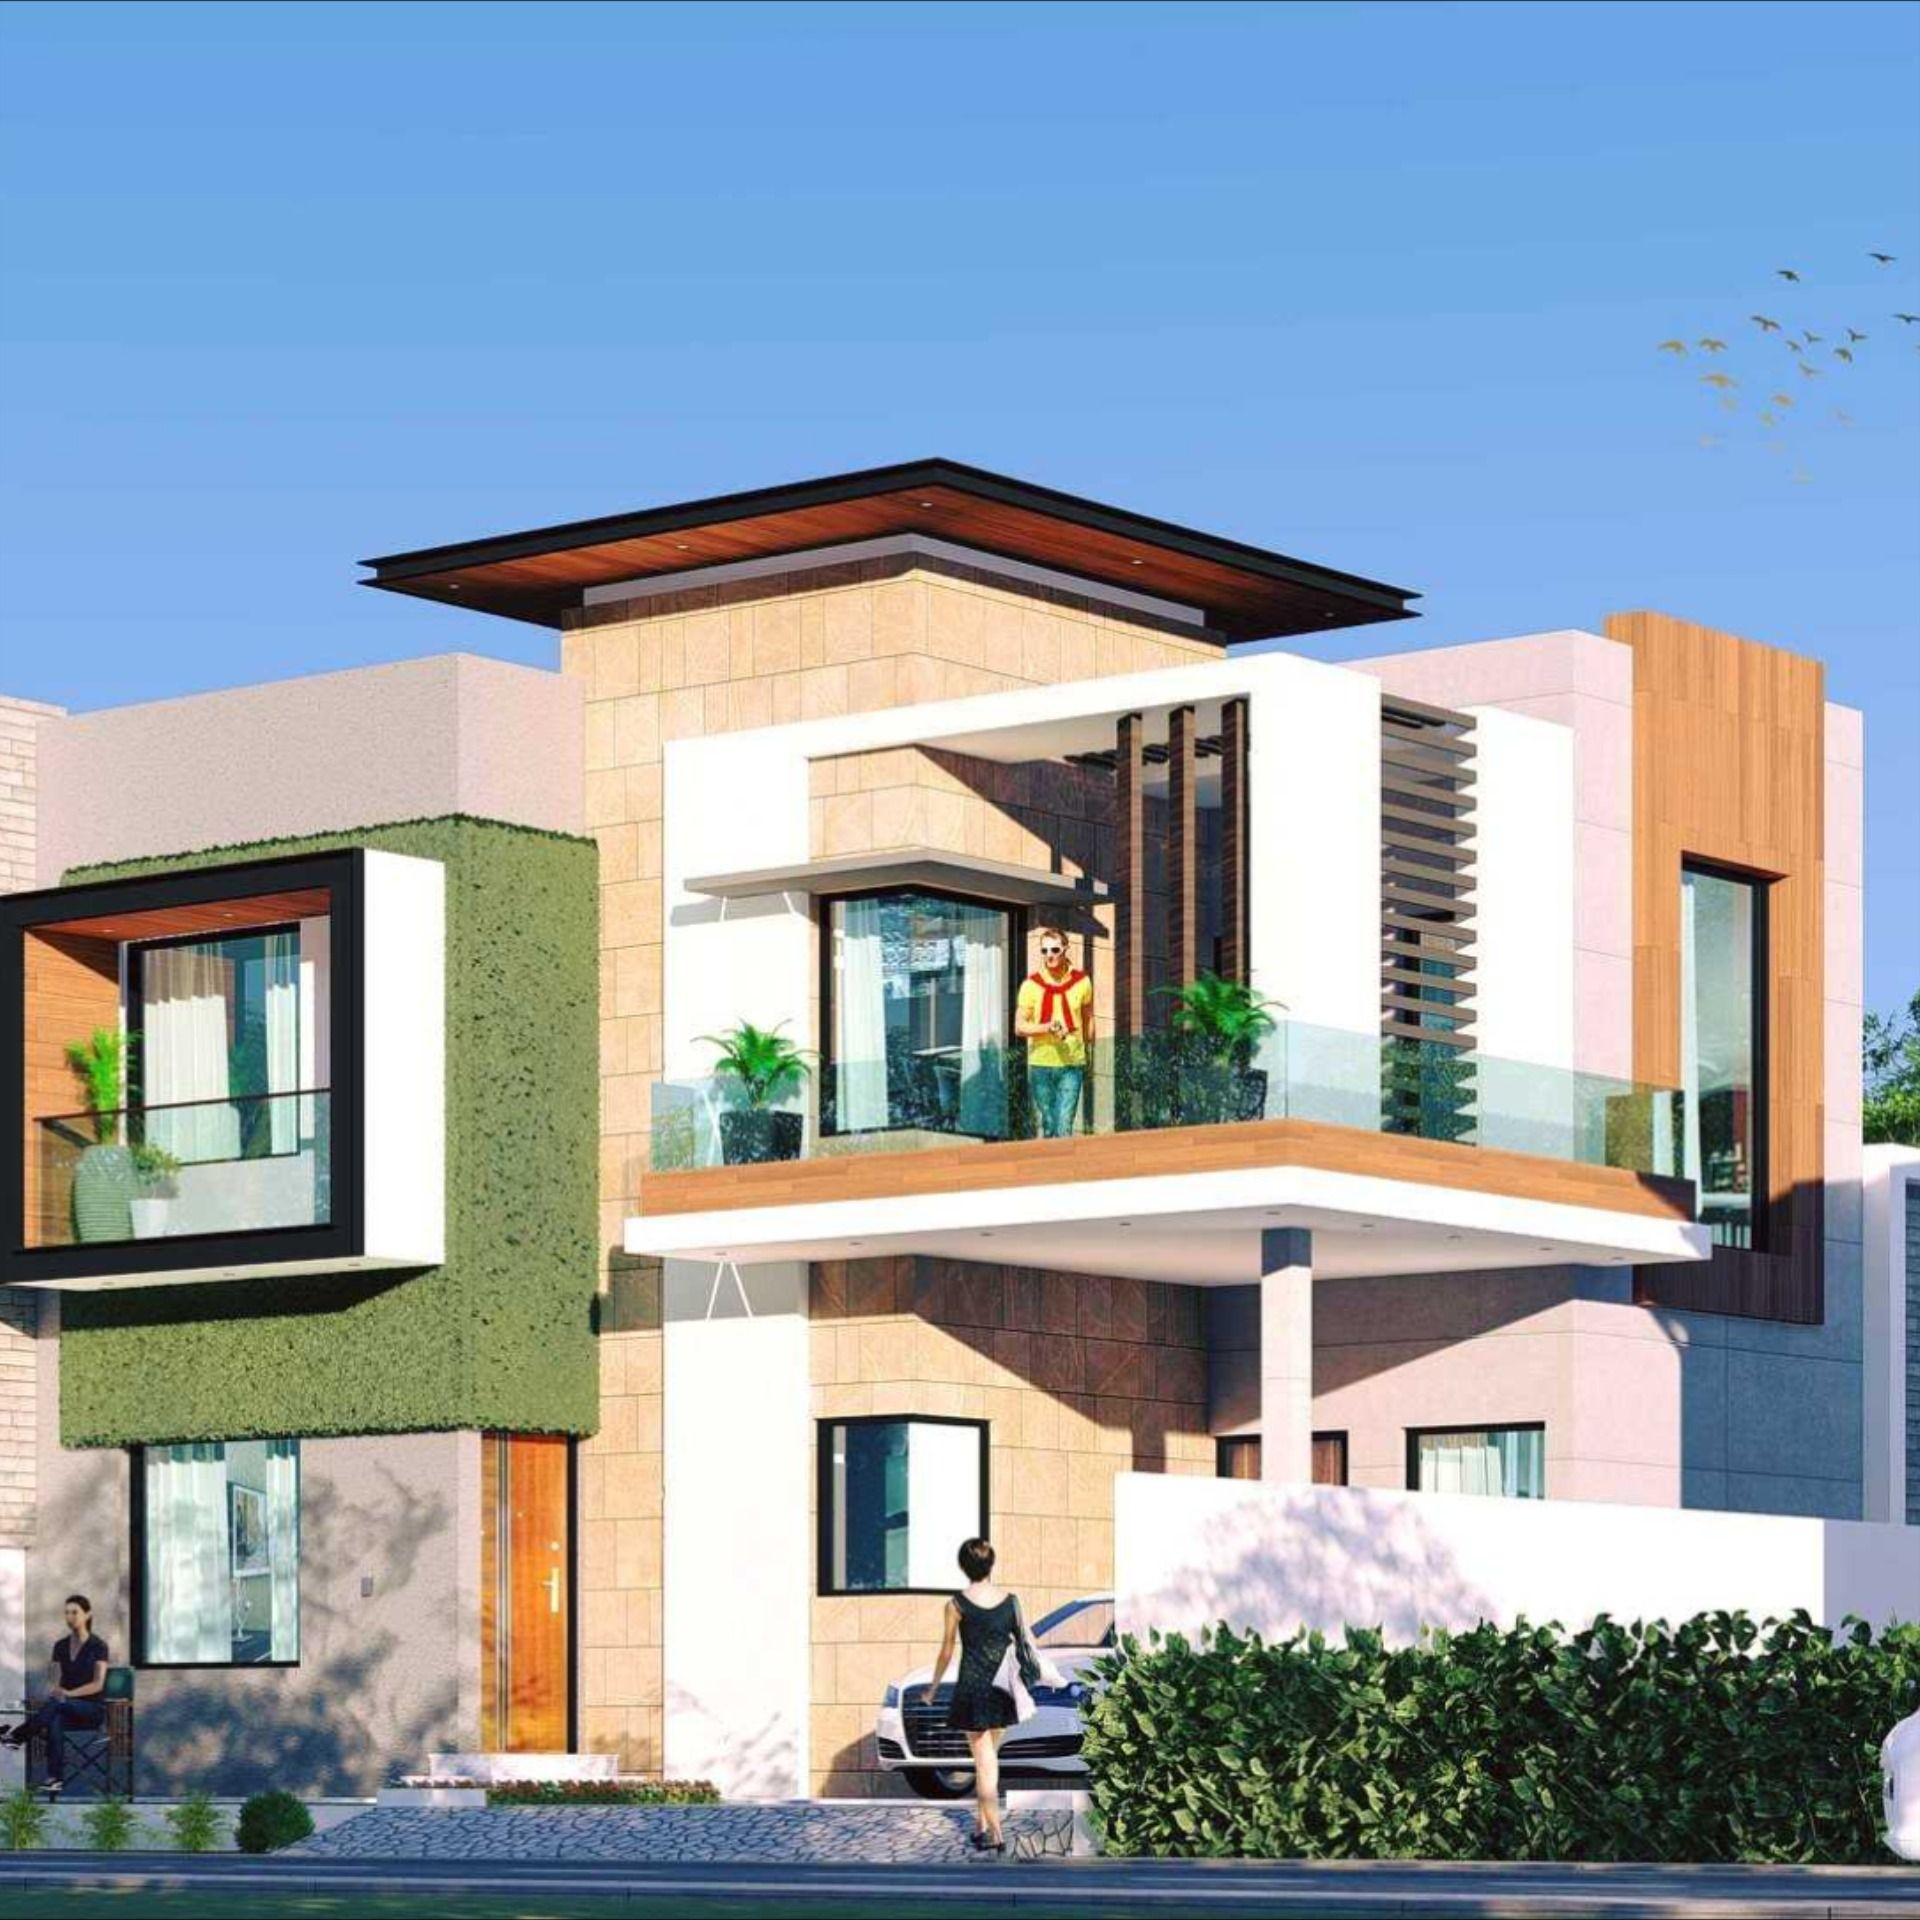 200 Sq Yds Residential House Design In 2020 House Design Design Residential House